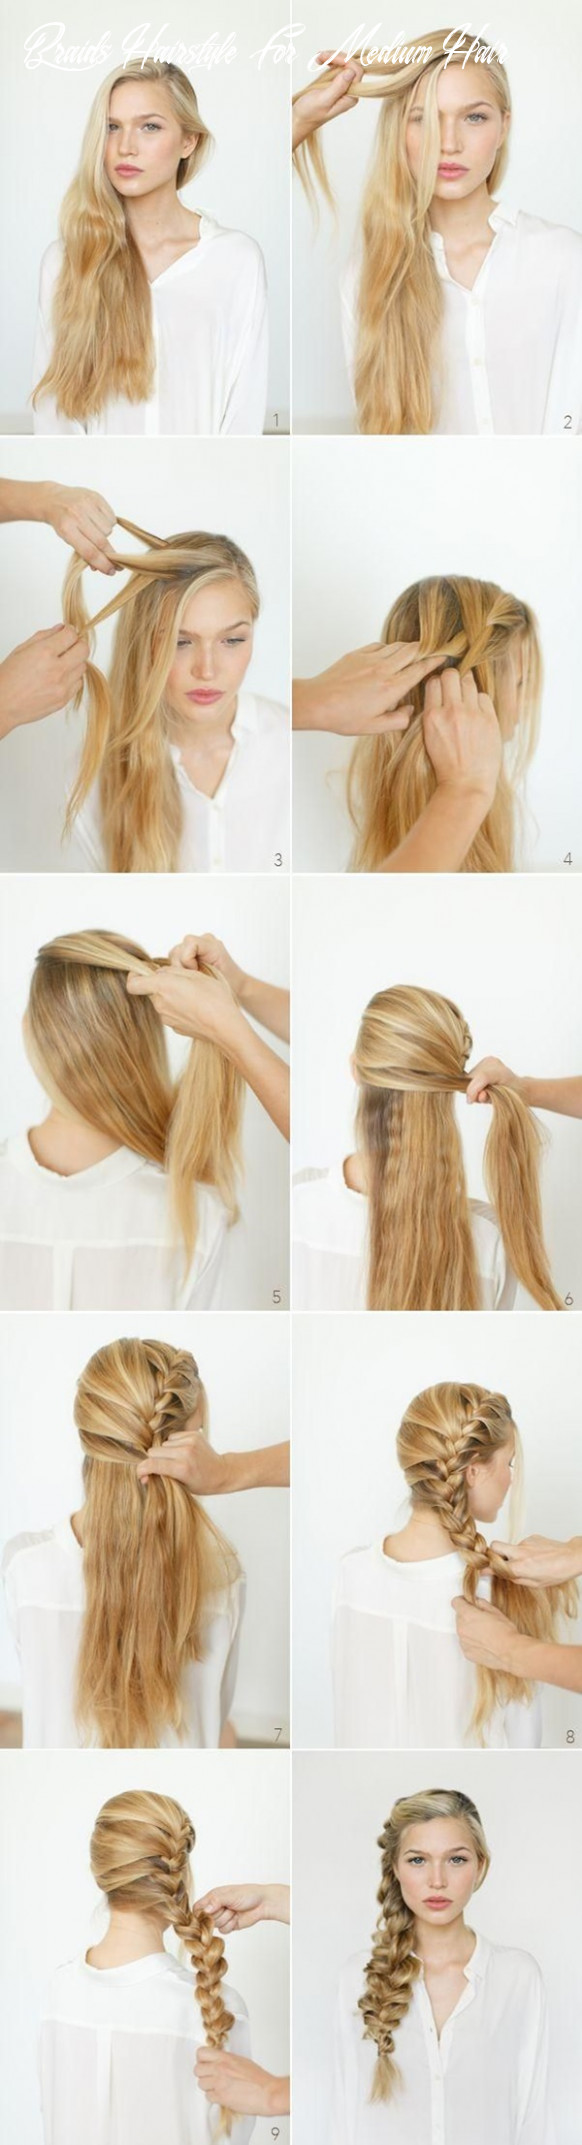 9 romantic braided hairstyles for long hair and medium hair braids hairstyle for medium hair